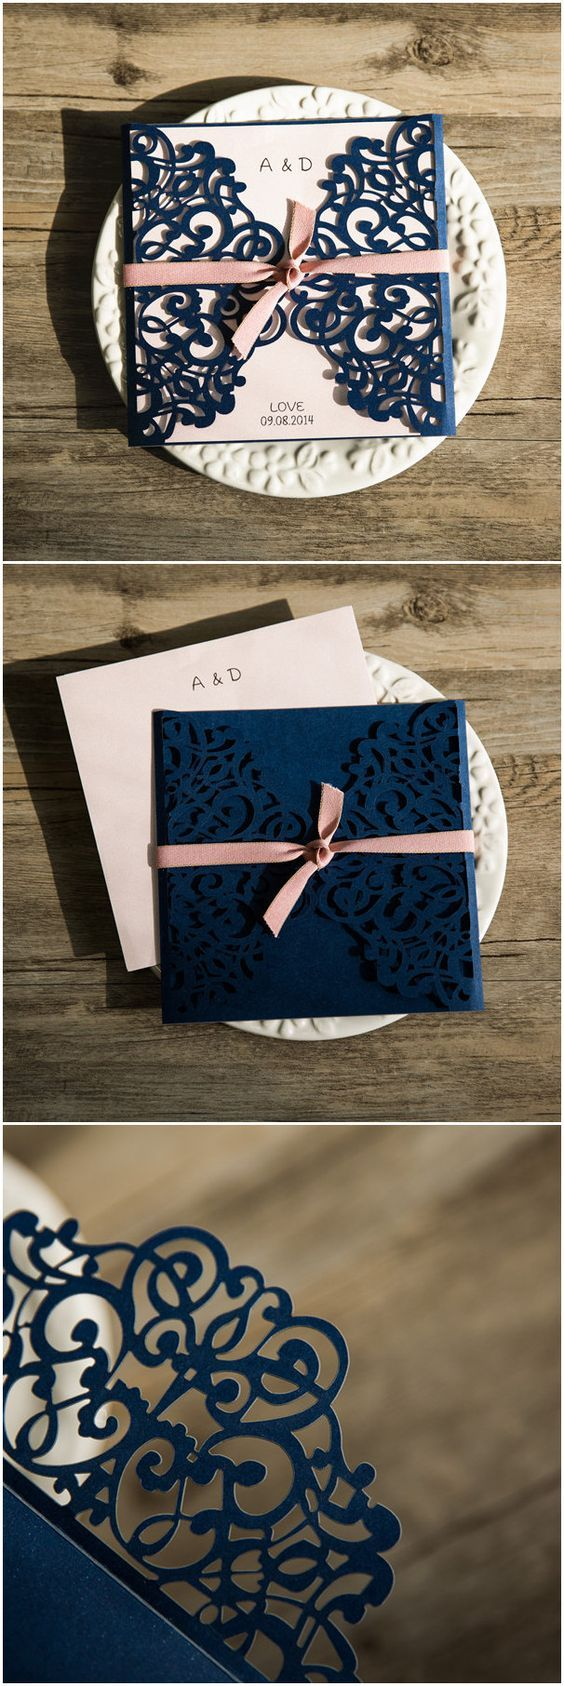 navy blue and blush pink wedding colors inspired laser cut wedding invitations for 2016 @elegantwinvites: